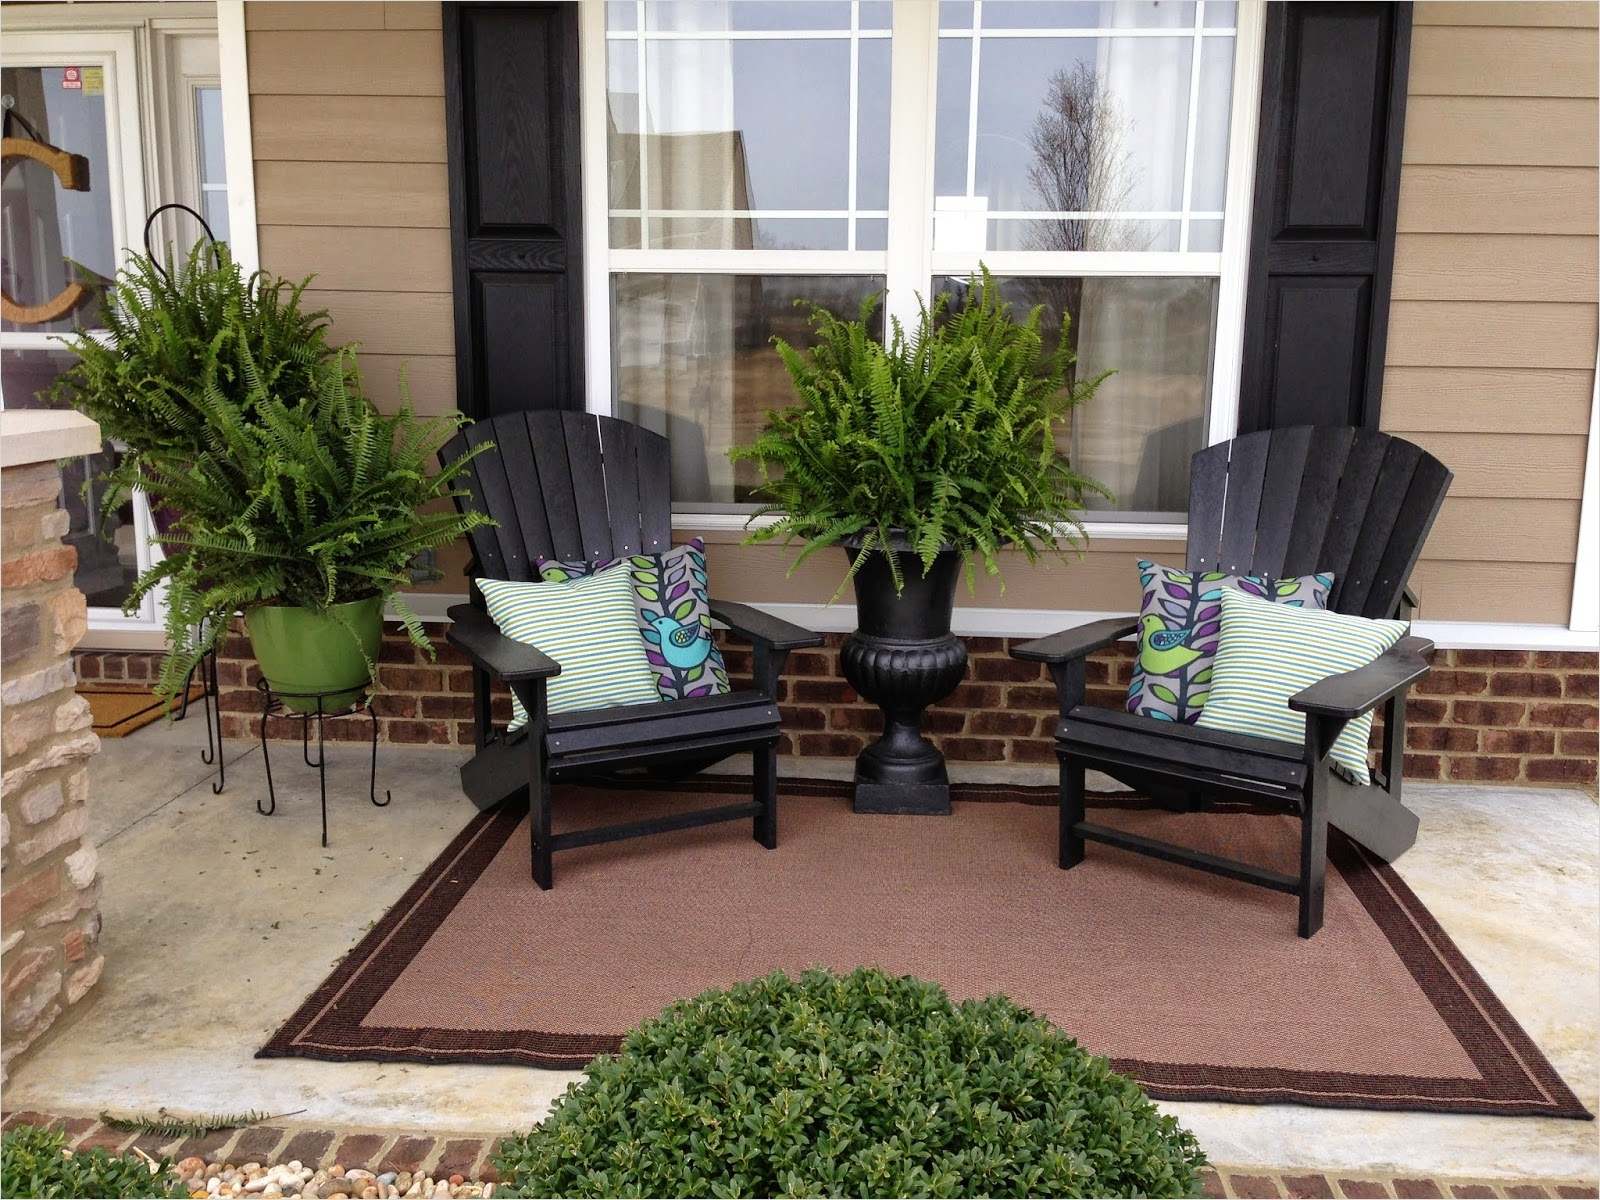 40 Beautiful Summer Porch Decorating Ideas 85 7 Front Porch Decorating Ideas for Your Home Instant Knowledge 6